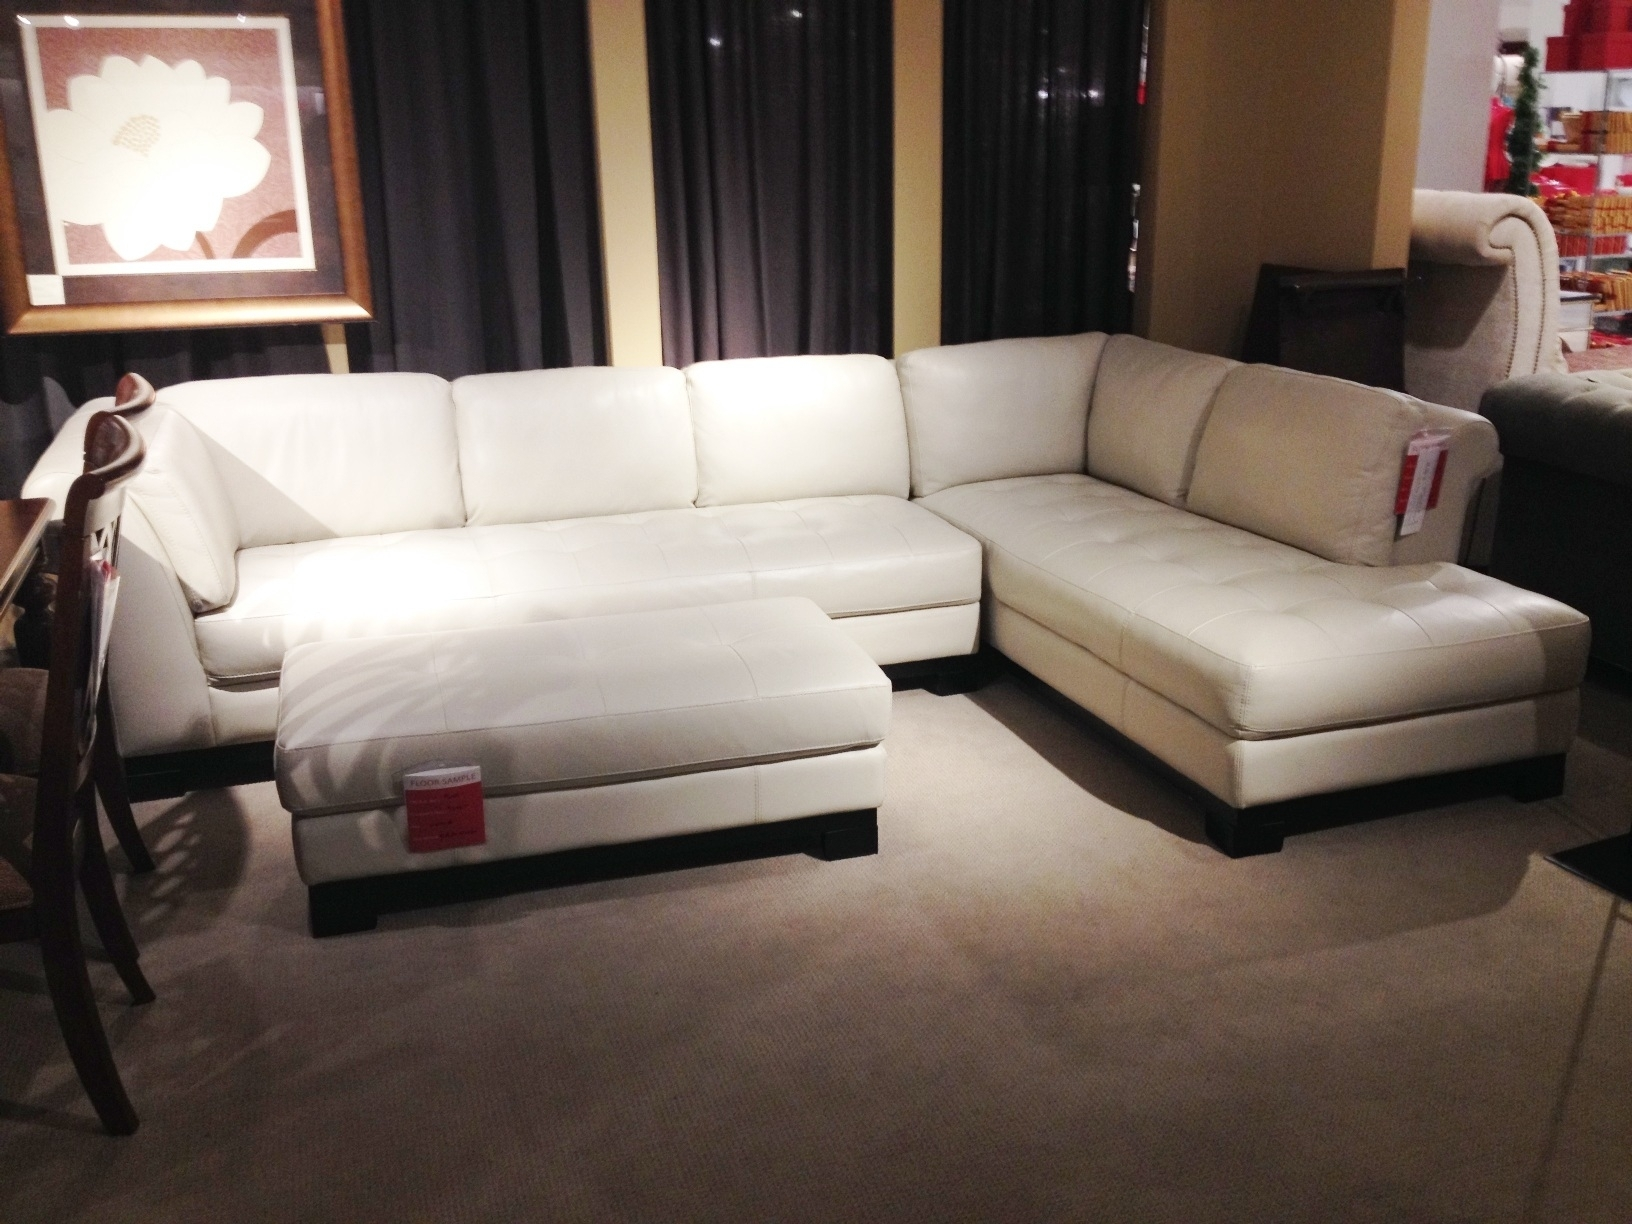 White Leather Sectional Sofa Macy's • Leather Sofa Pertaining To Macys Sectional Sofas (Image 10 of 10)